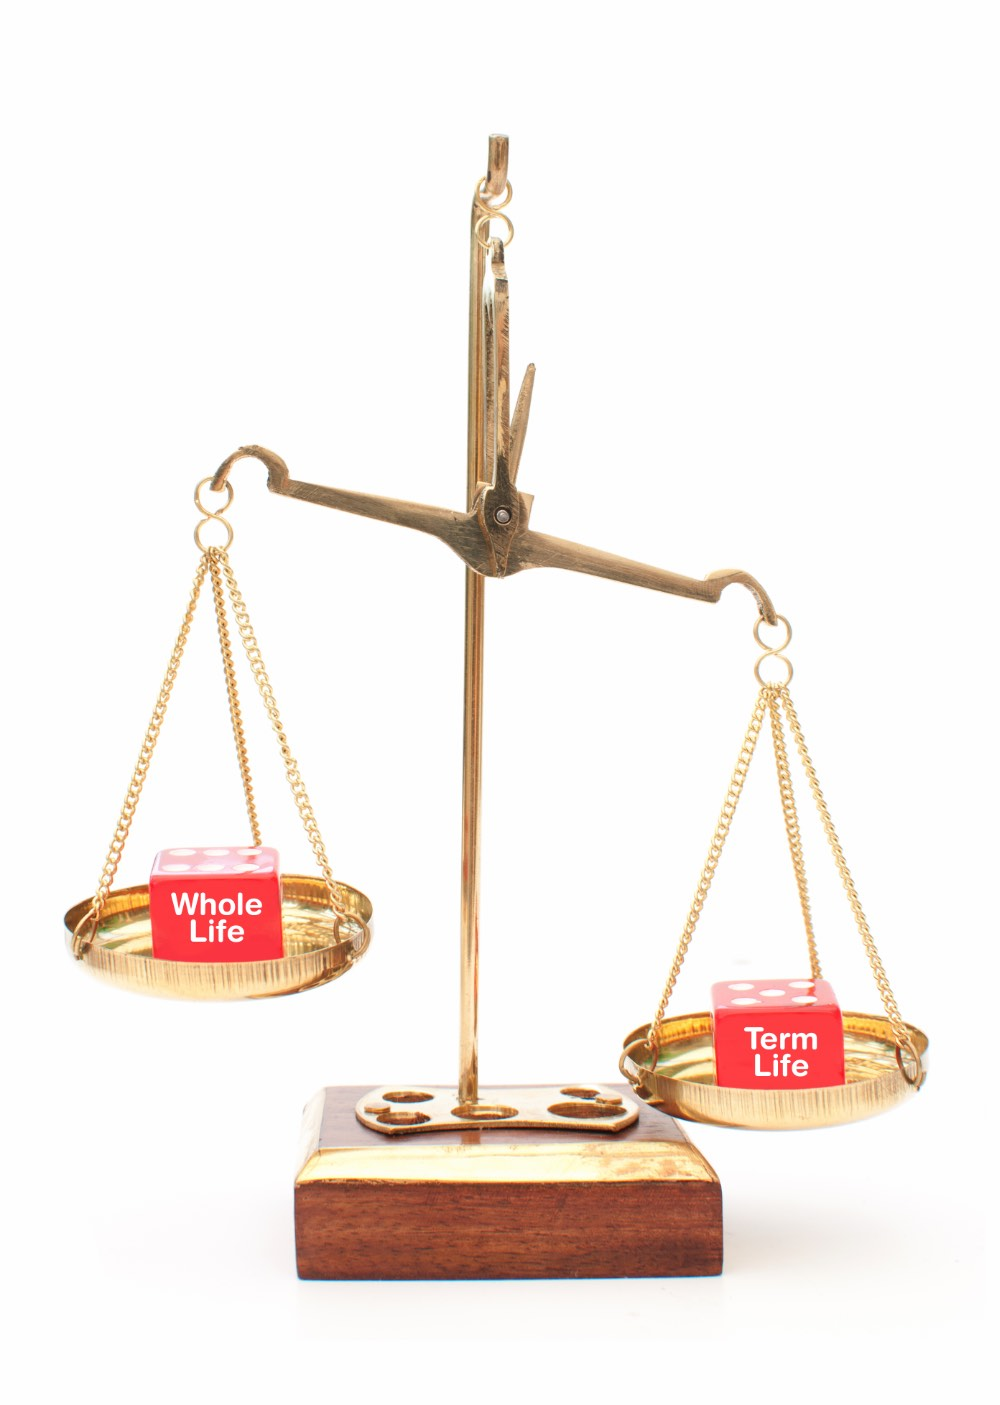 Scale balancing whole life and term life blocks.